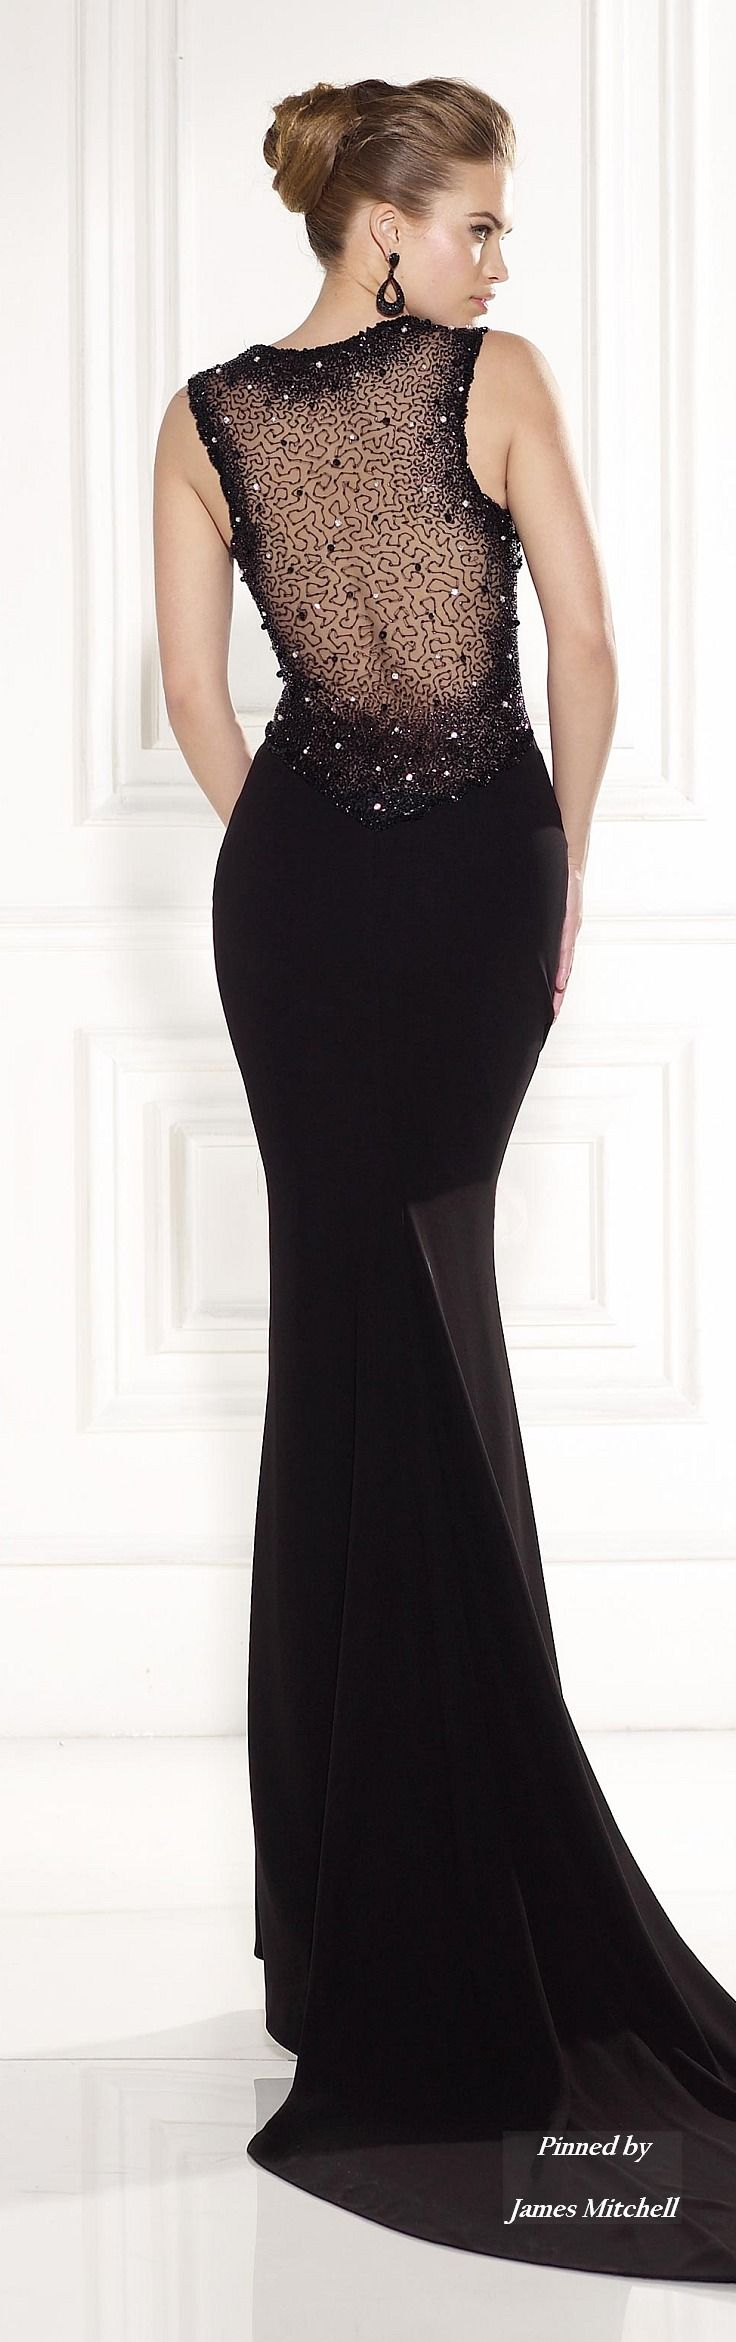 17 Best ideas about Black Tie Dresses on Pinterest  Beach formal ...